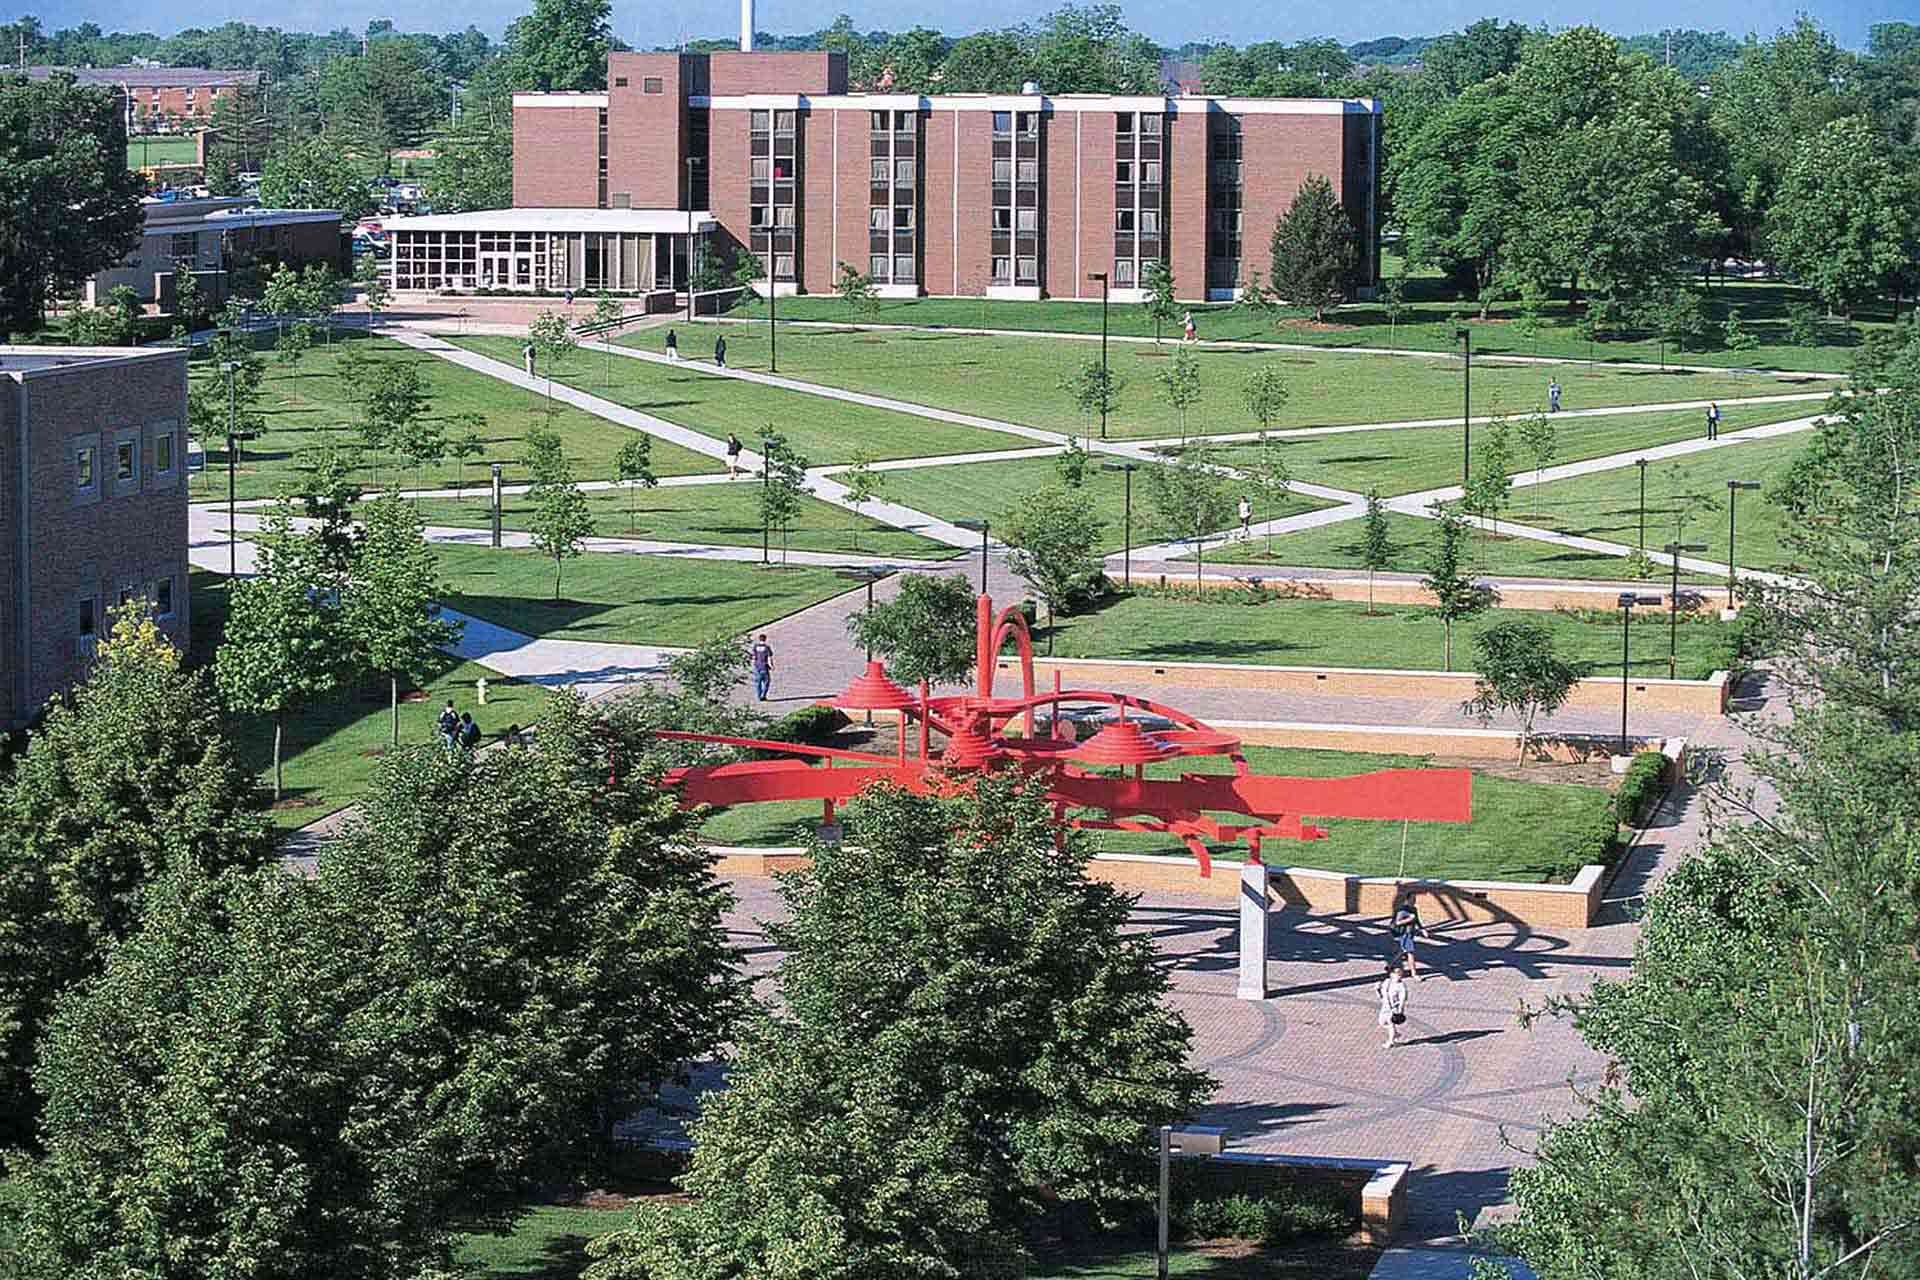 10 Buildings at the Wright State University-Main Campus You Should Know